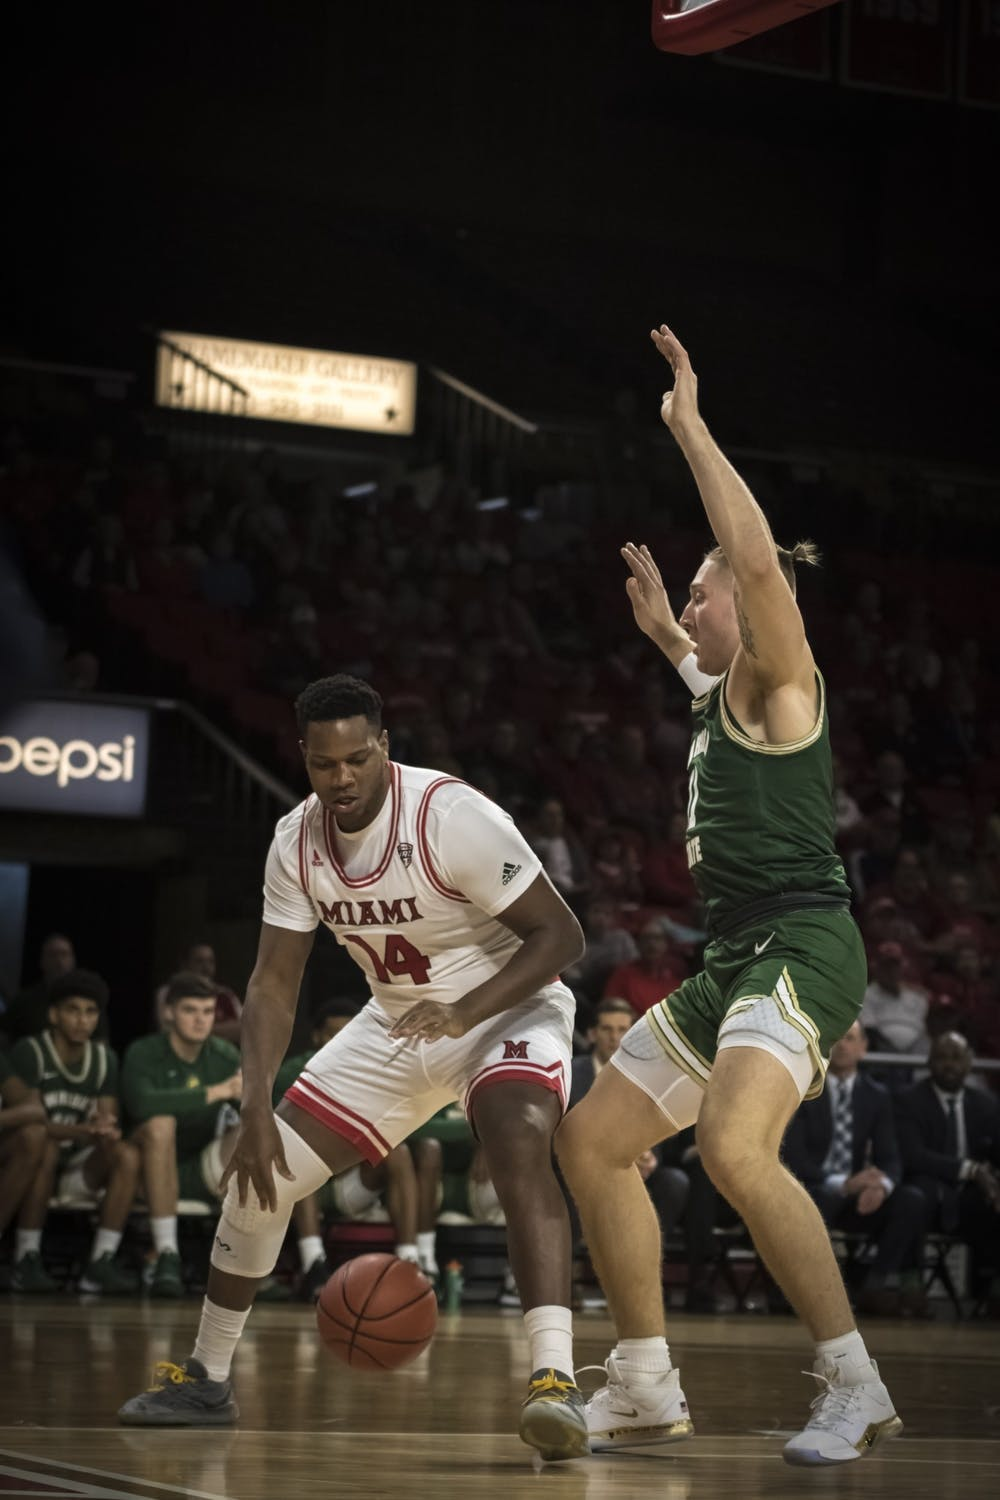 <p>Senior forward Bam Bowman posts up against a Wright State defender Nov. 9 at Millett Hall. Bowman scored four points during an 88-81 Miami loss.</p>